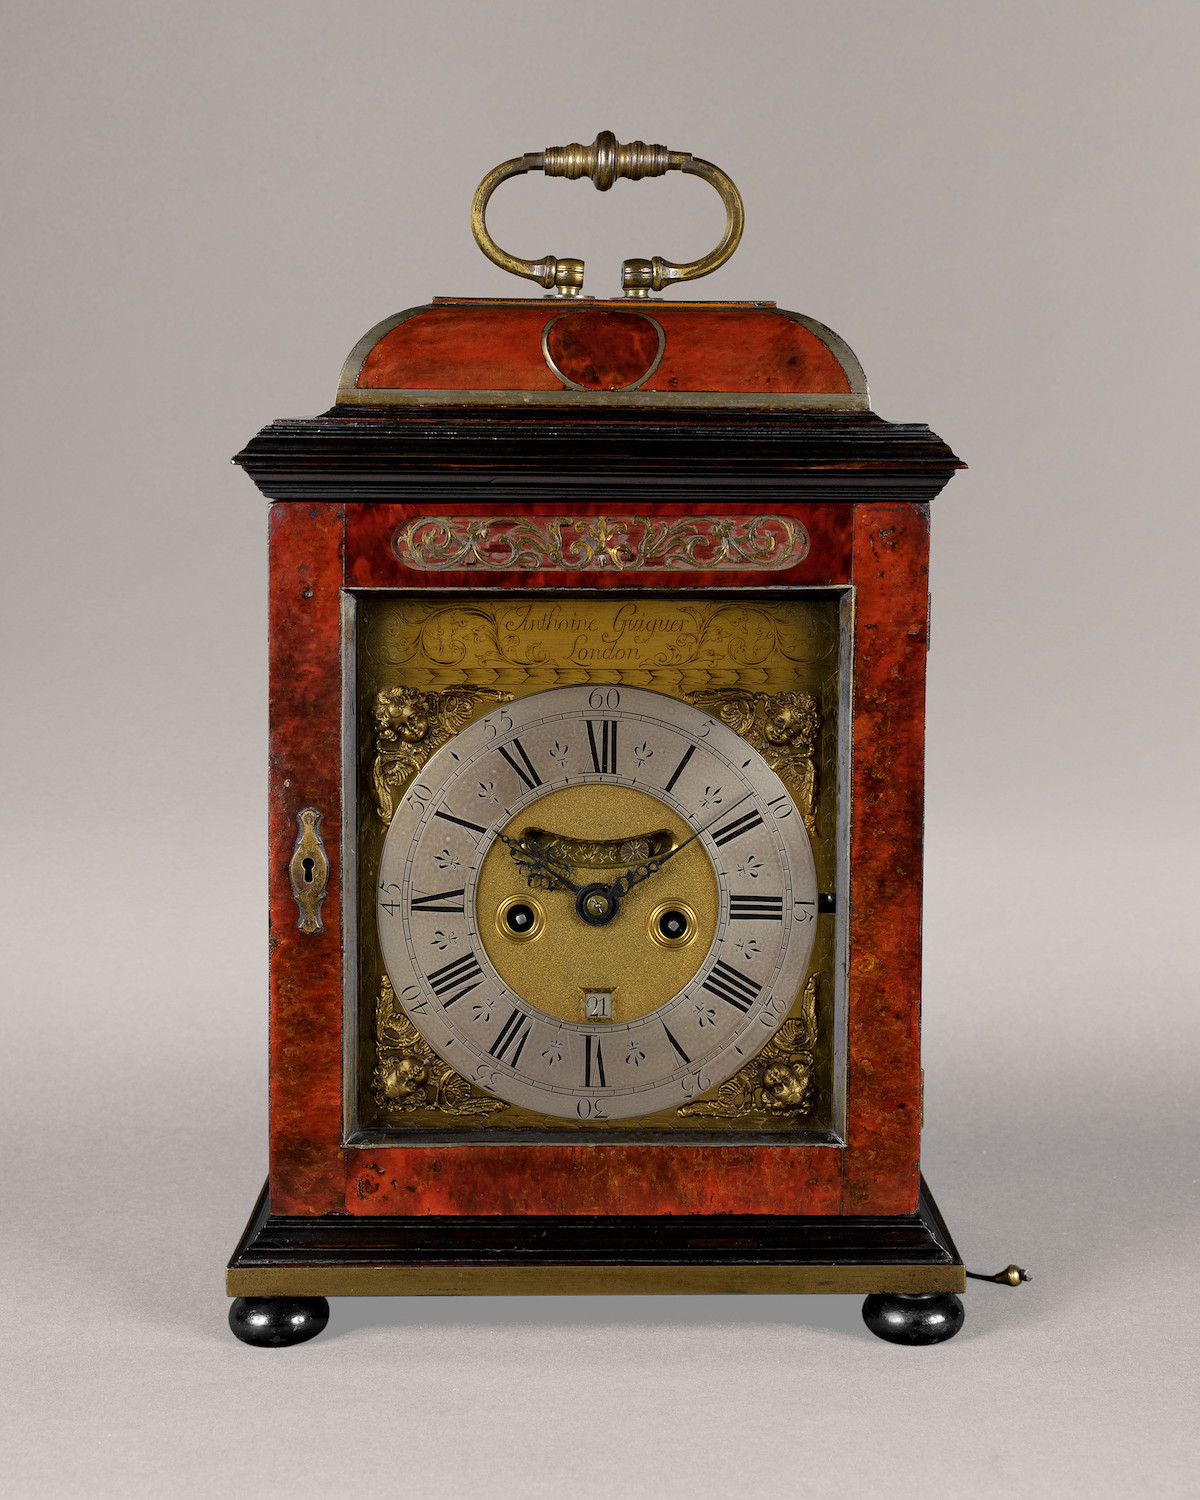 ANTHOINE GUIGUER RARE WILLIAM III PERIOD PEWTER INLAID TORTOISESHELL QUARTER REPEATING BRACKET CLOCK